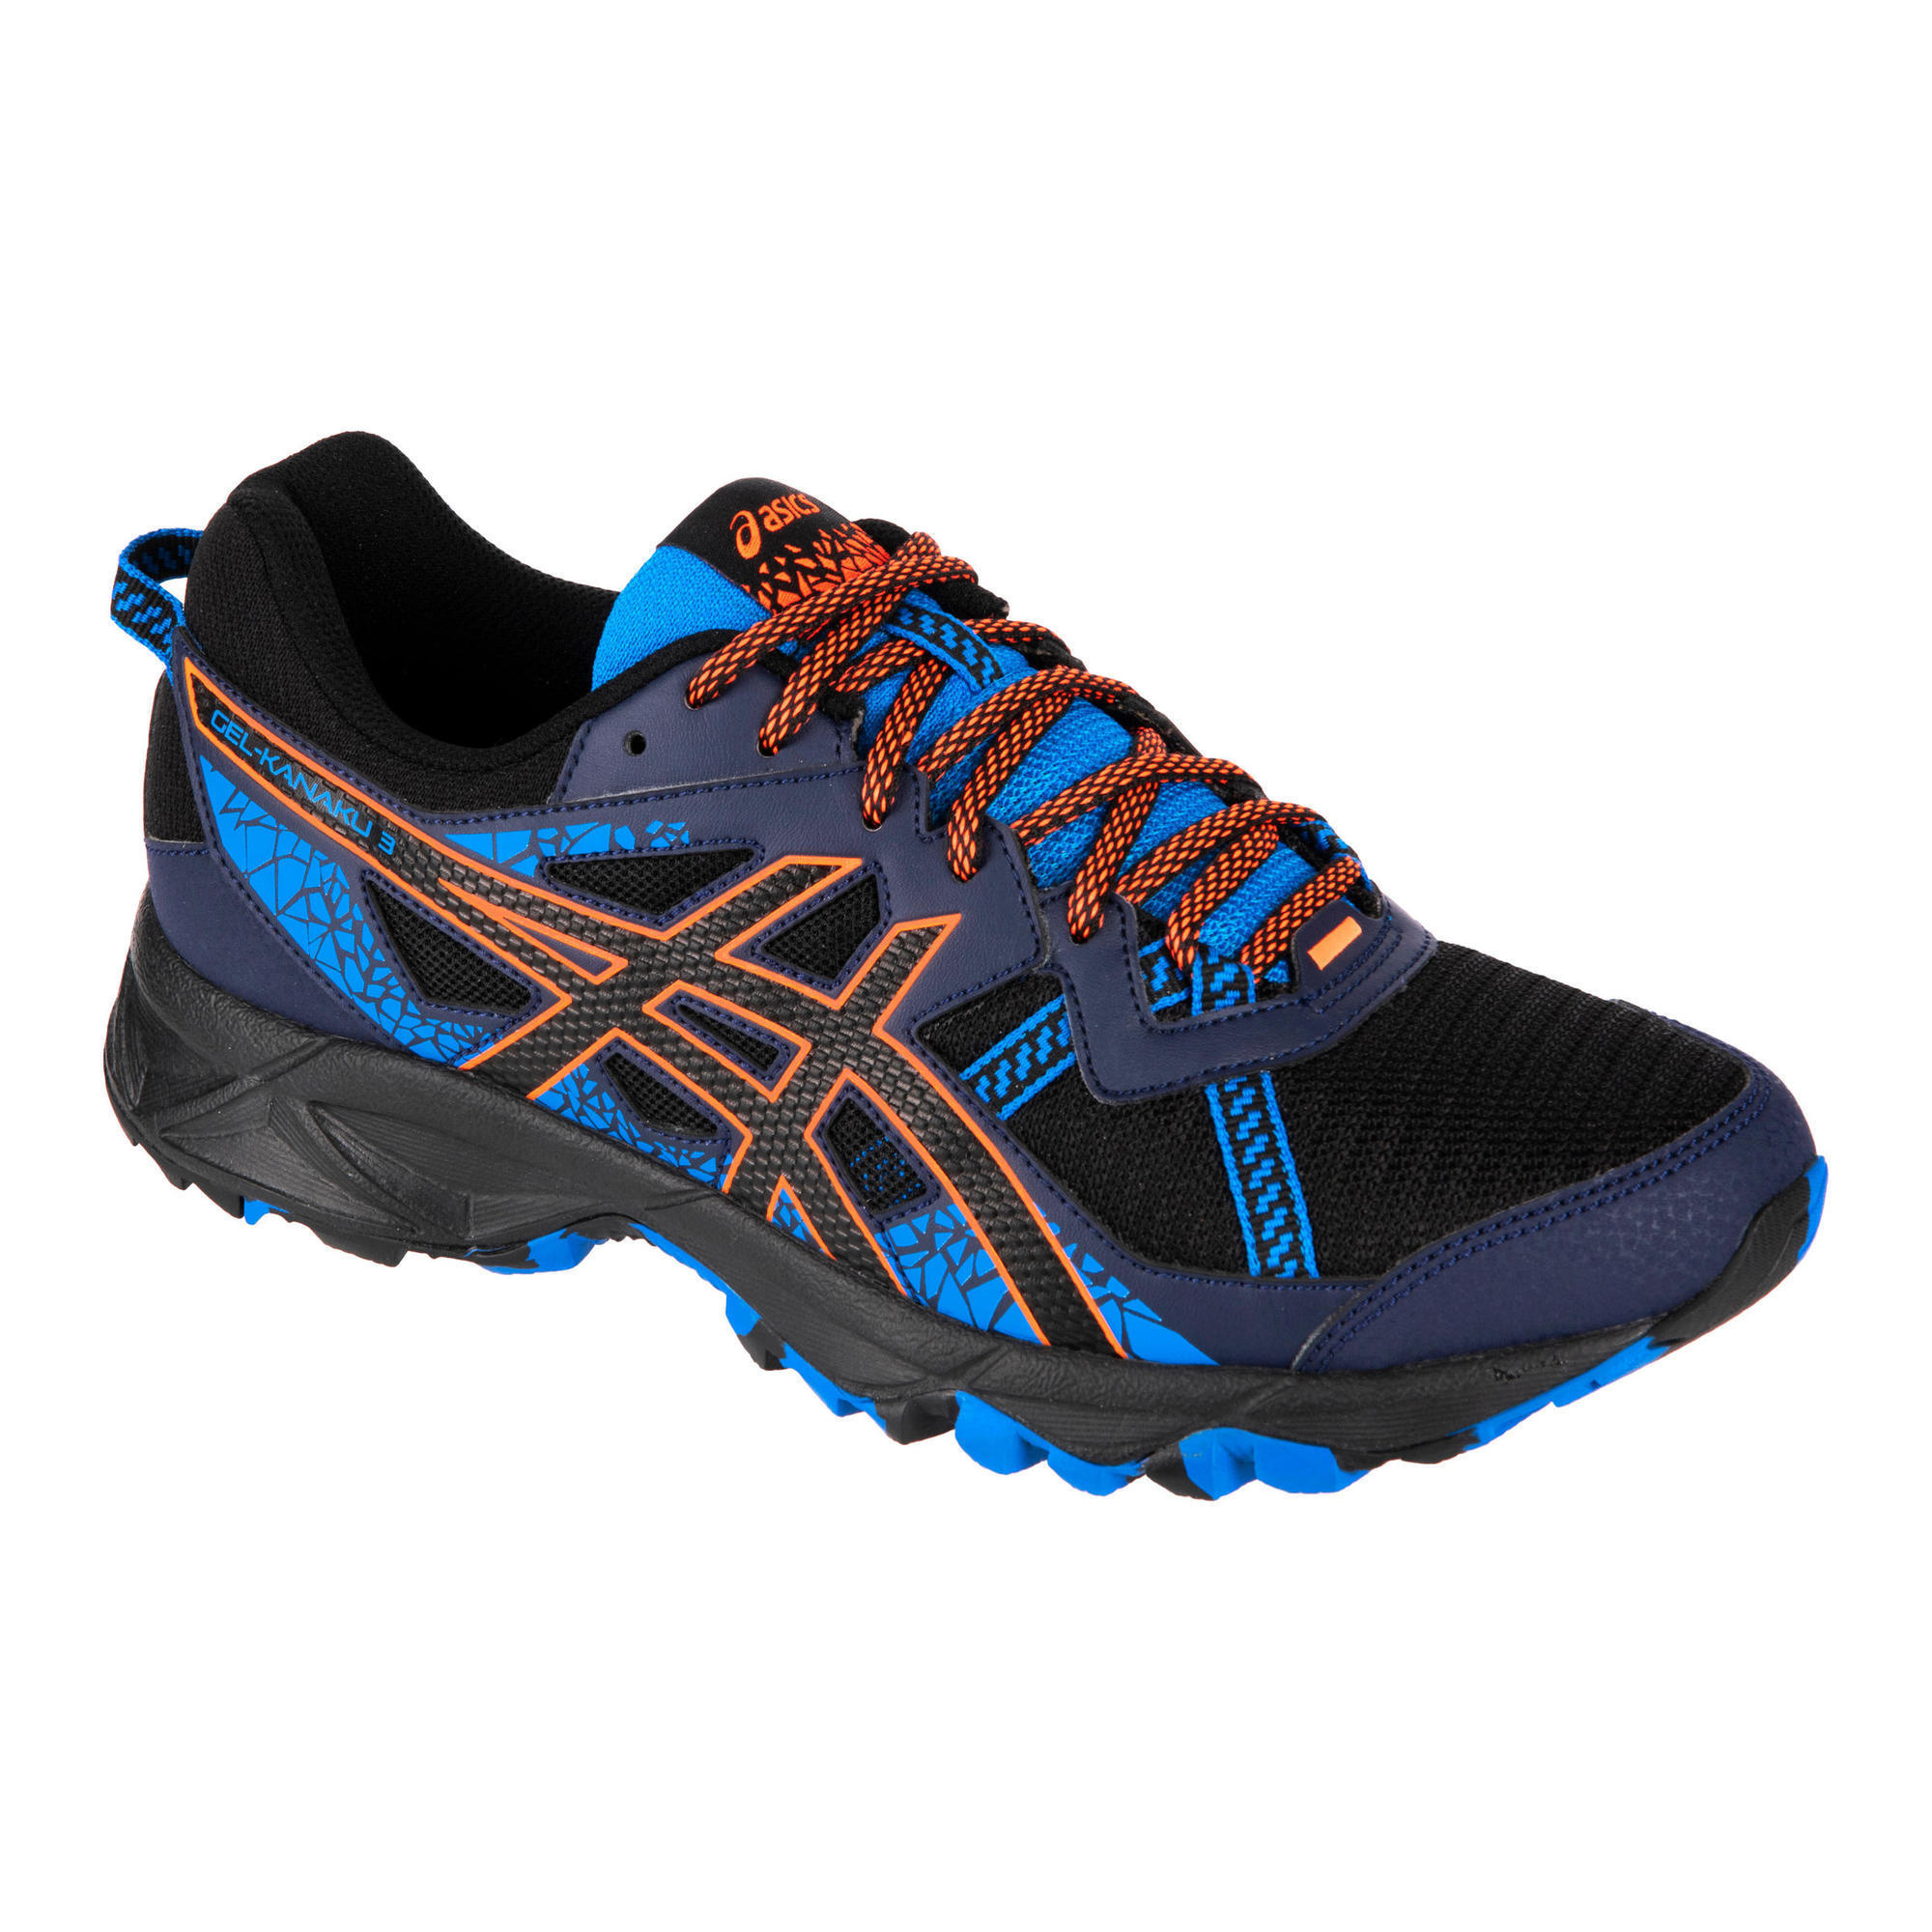 Casual Trainers, Gym Trainers | Decathlon